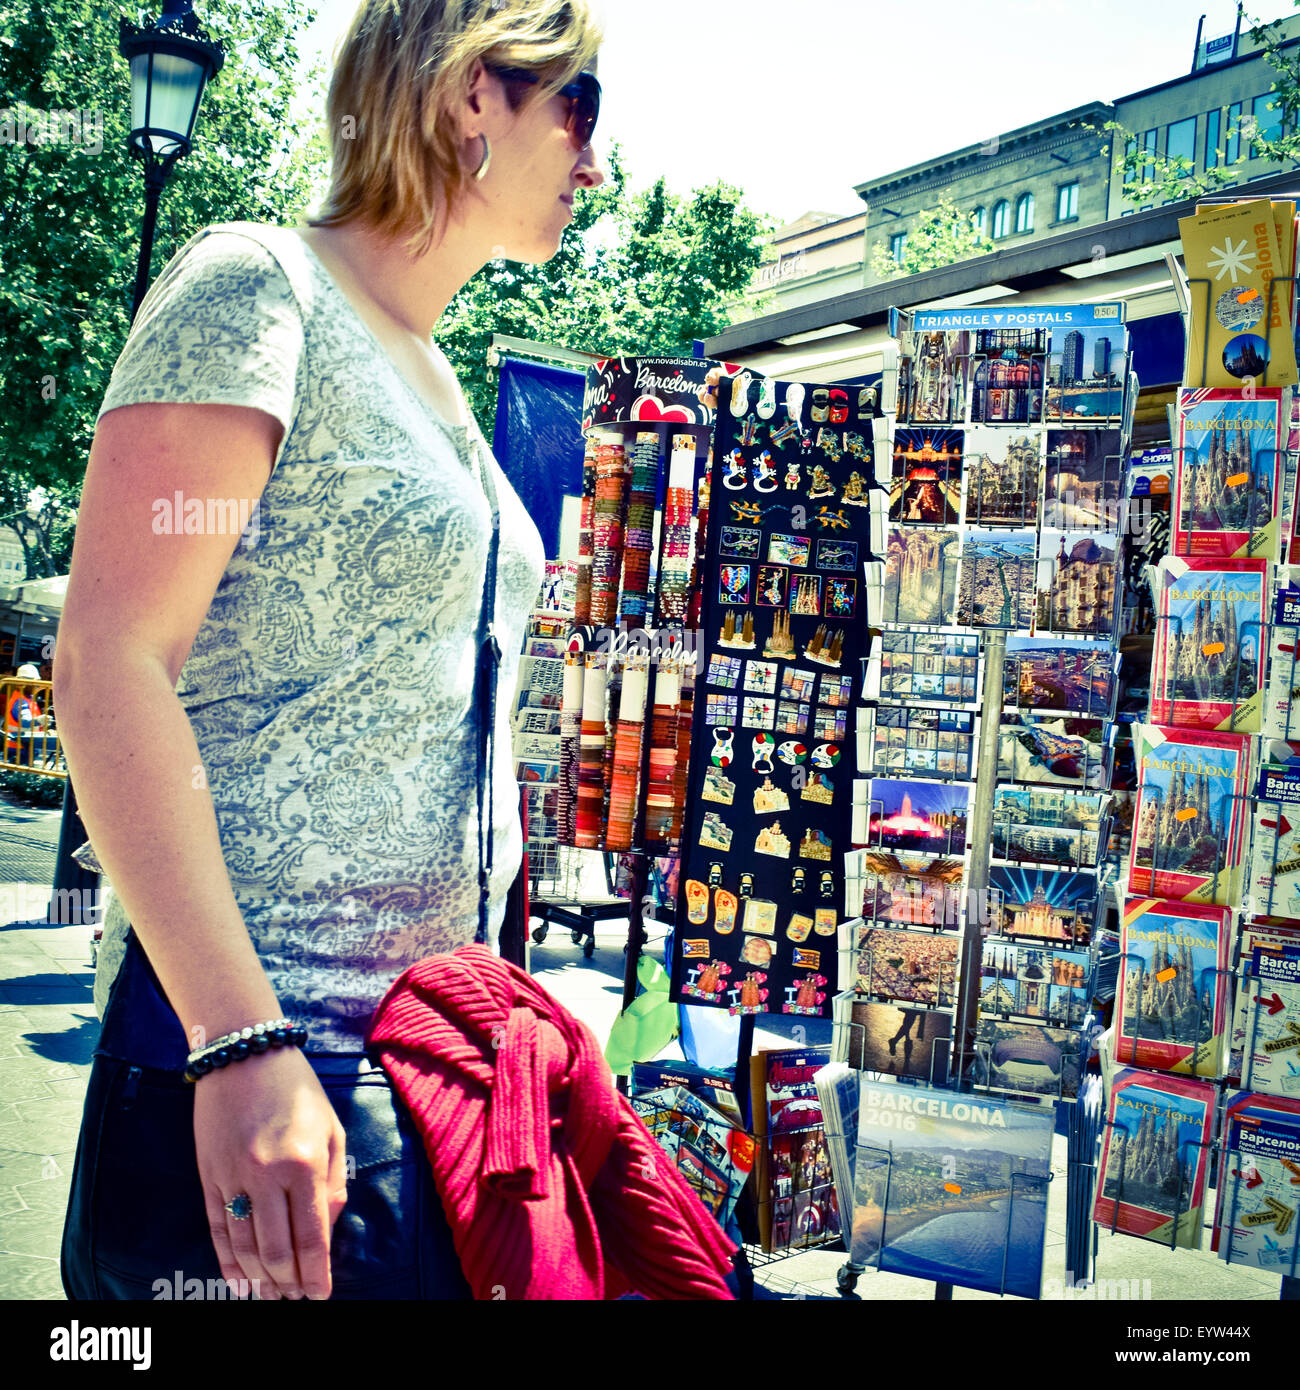 Woman and postcards. Barcelona, Catalonia, Spain. - Stock Image